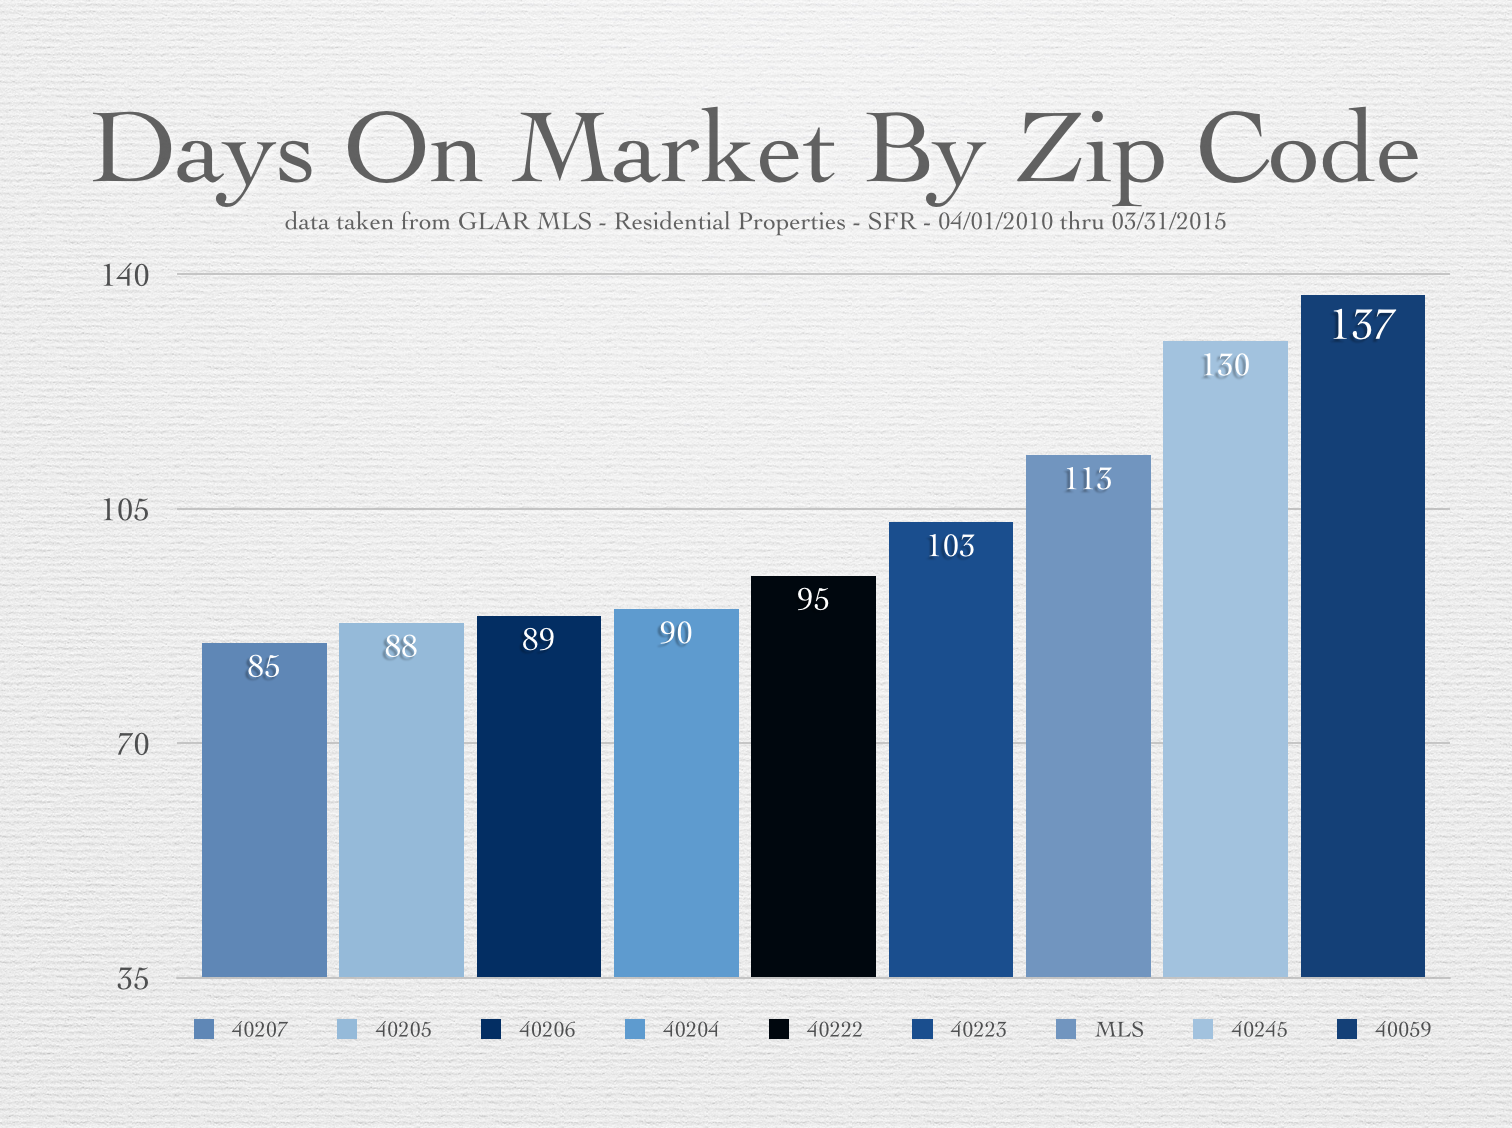 Days on Market by Zip Code